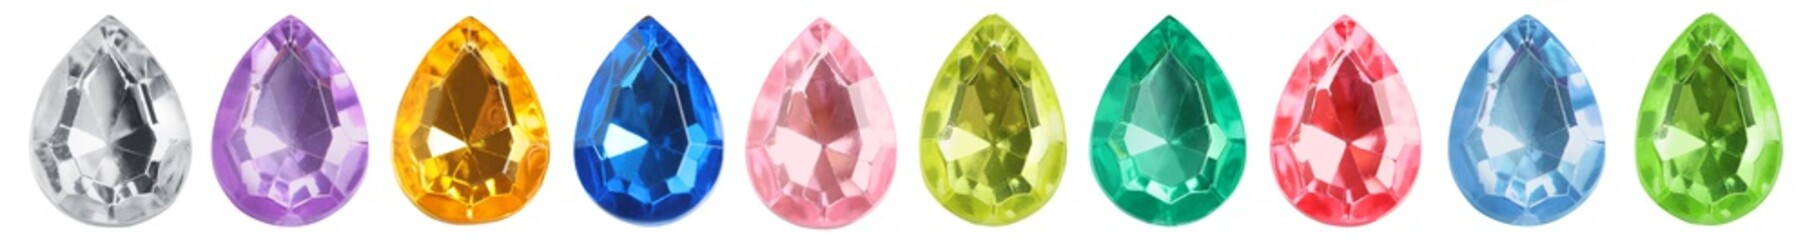 Set of bright gemstones isolated on white. Banner design